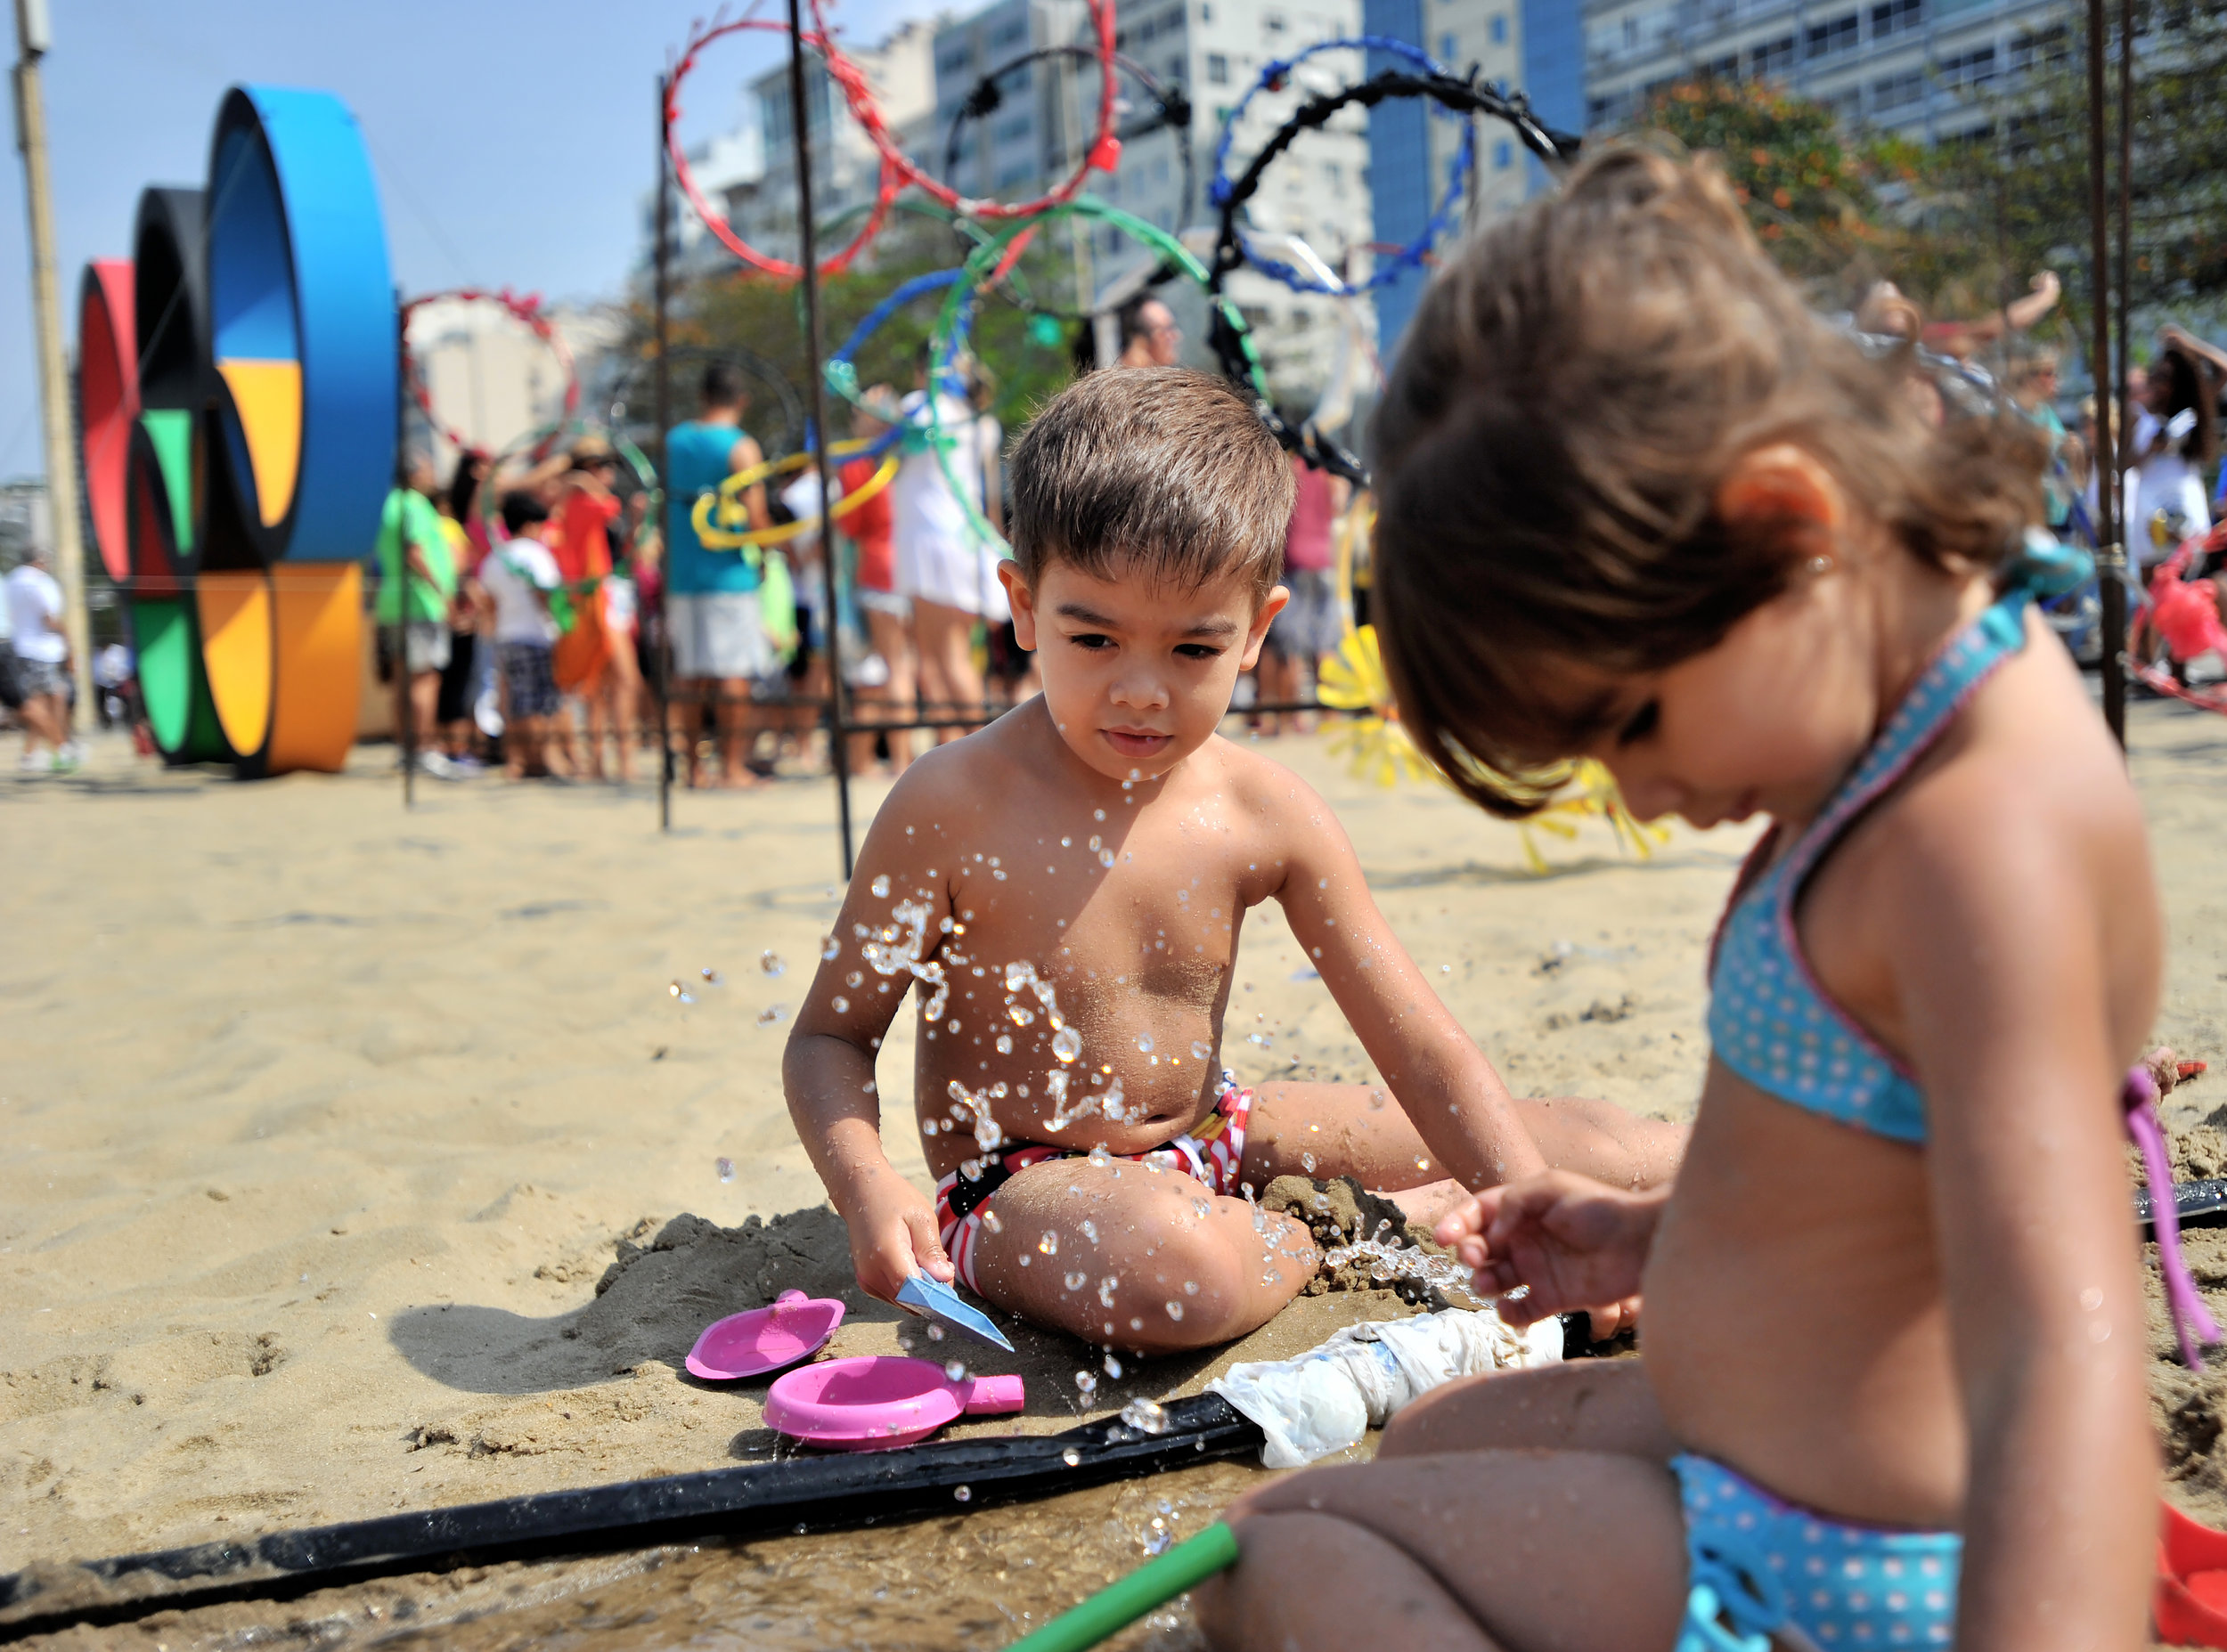 Erik Leal Temporal, 4, and his sister Melissa, 3, of Rio de Janeiro, play in the sand near the Olympic Rings at Copacabana Beach in Rio de Janeiro, Brazil, on August 7, 2016. (Sarah Stier | Ball State at the Games)